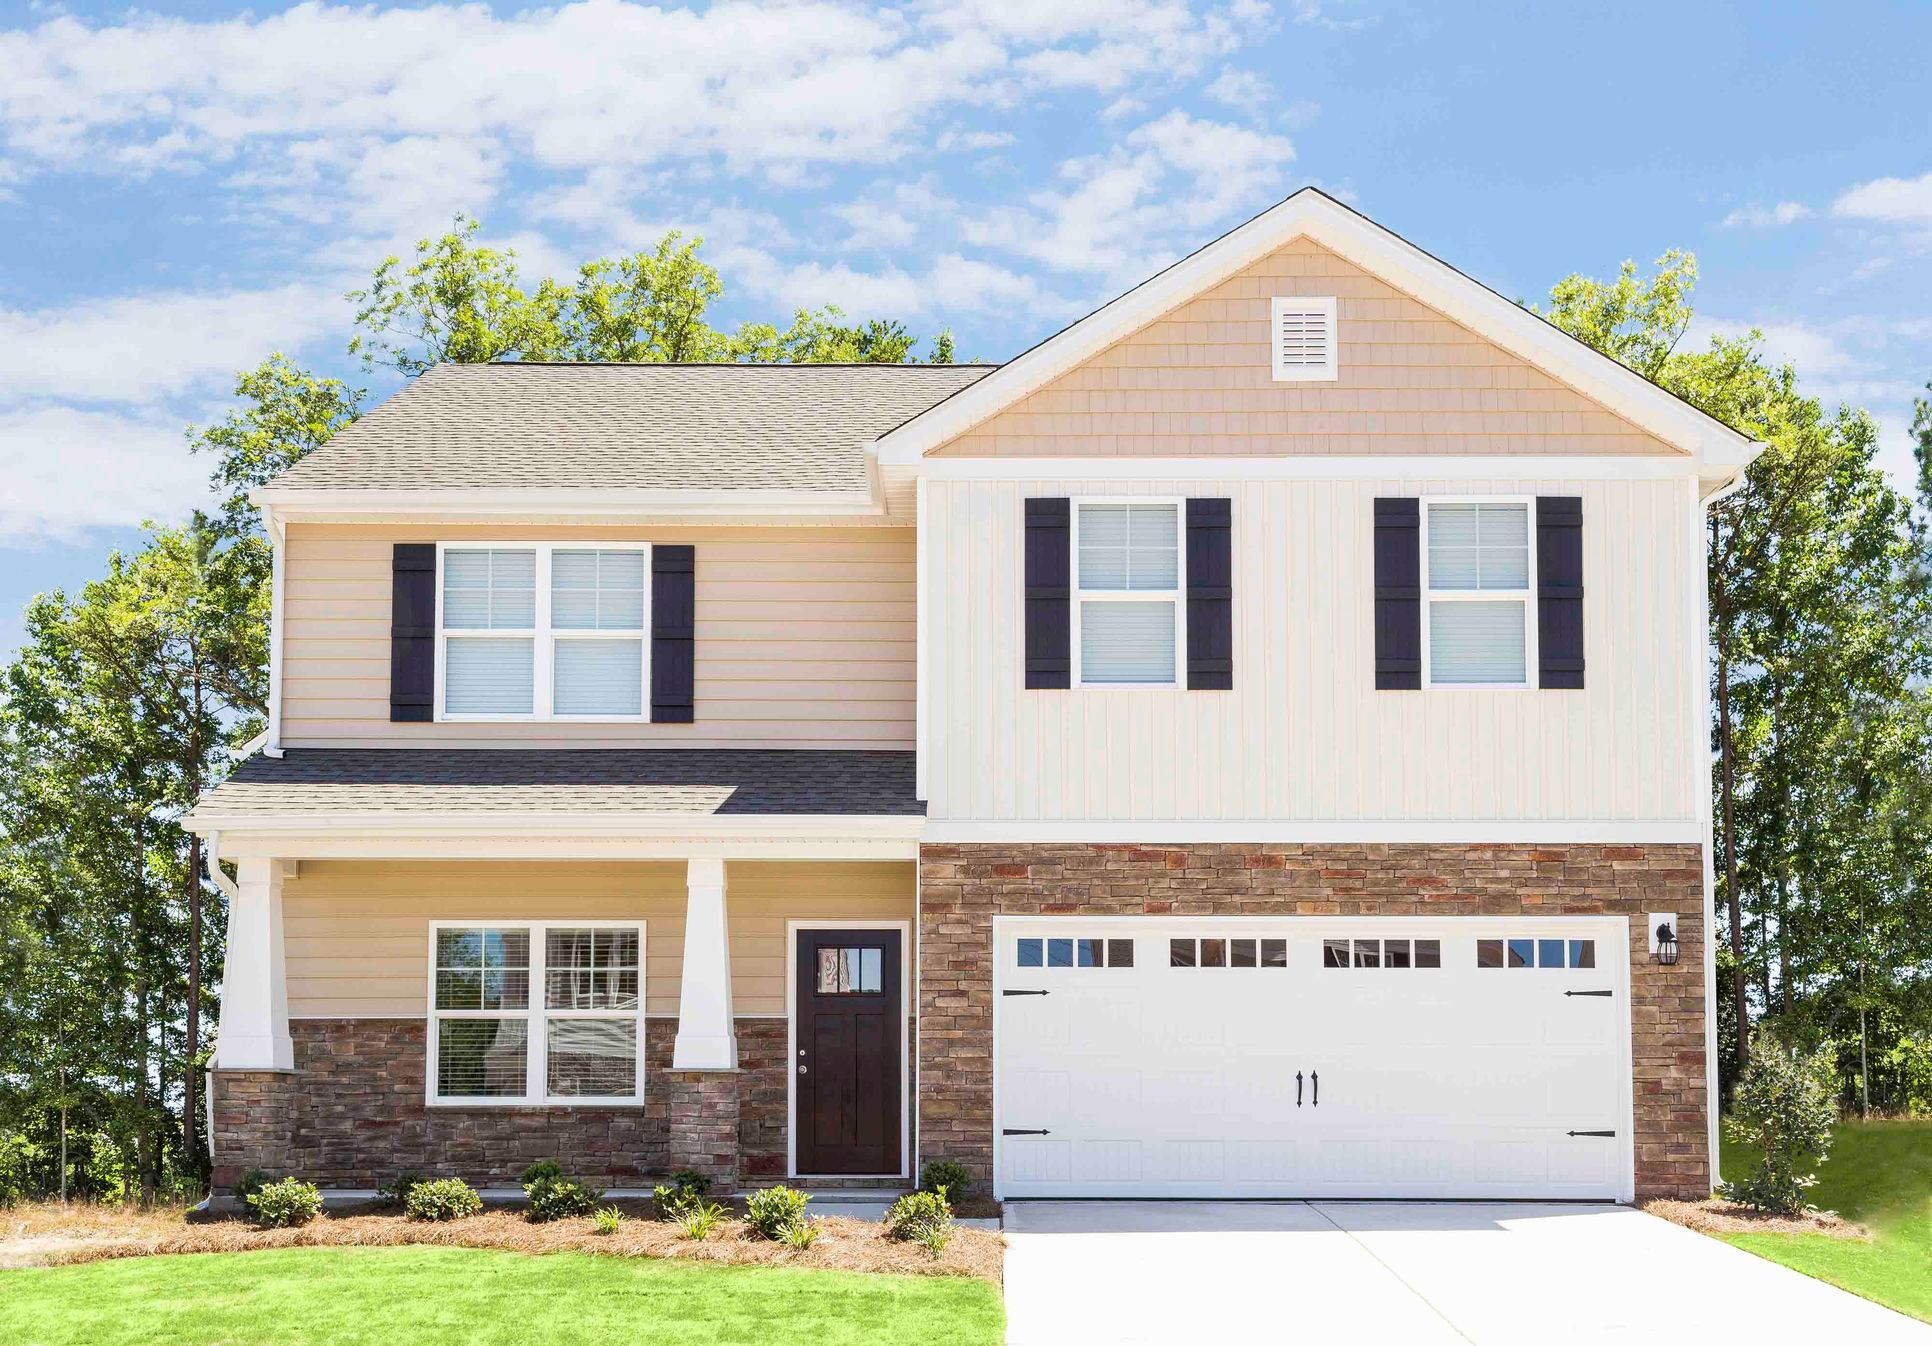 The Georgetown:5 bed/3 bath home available at Pecan Ridge